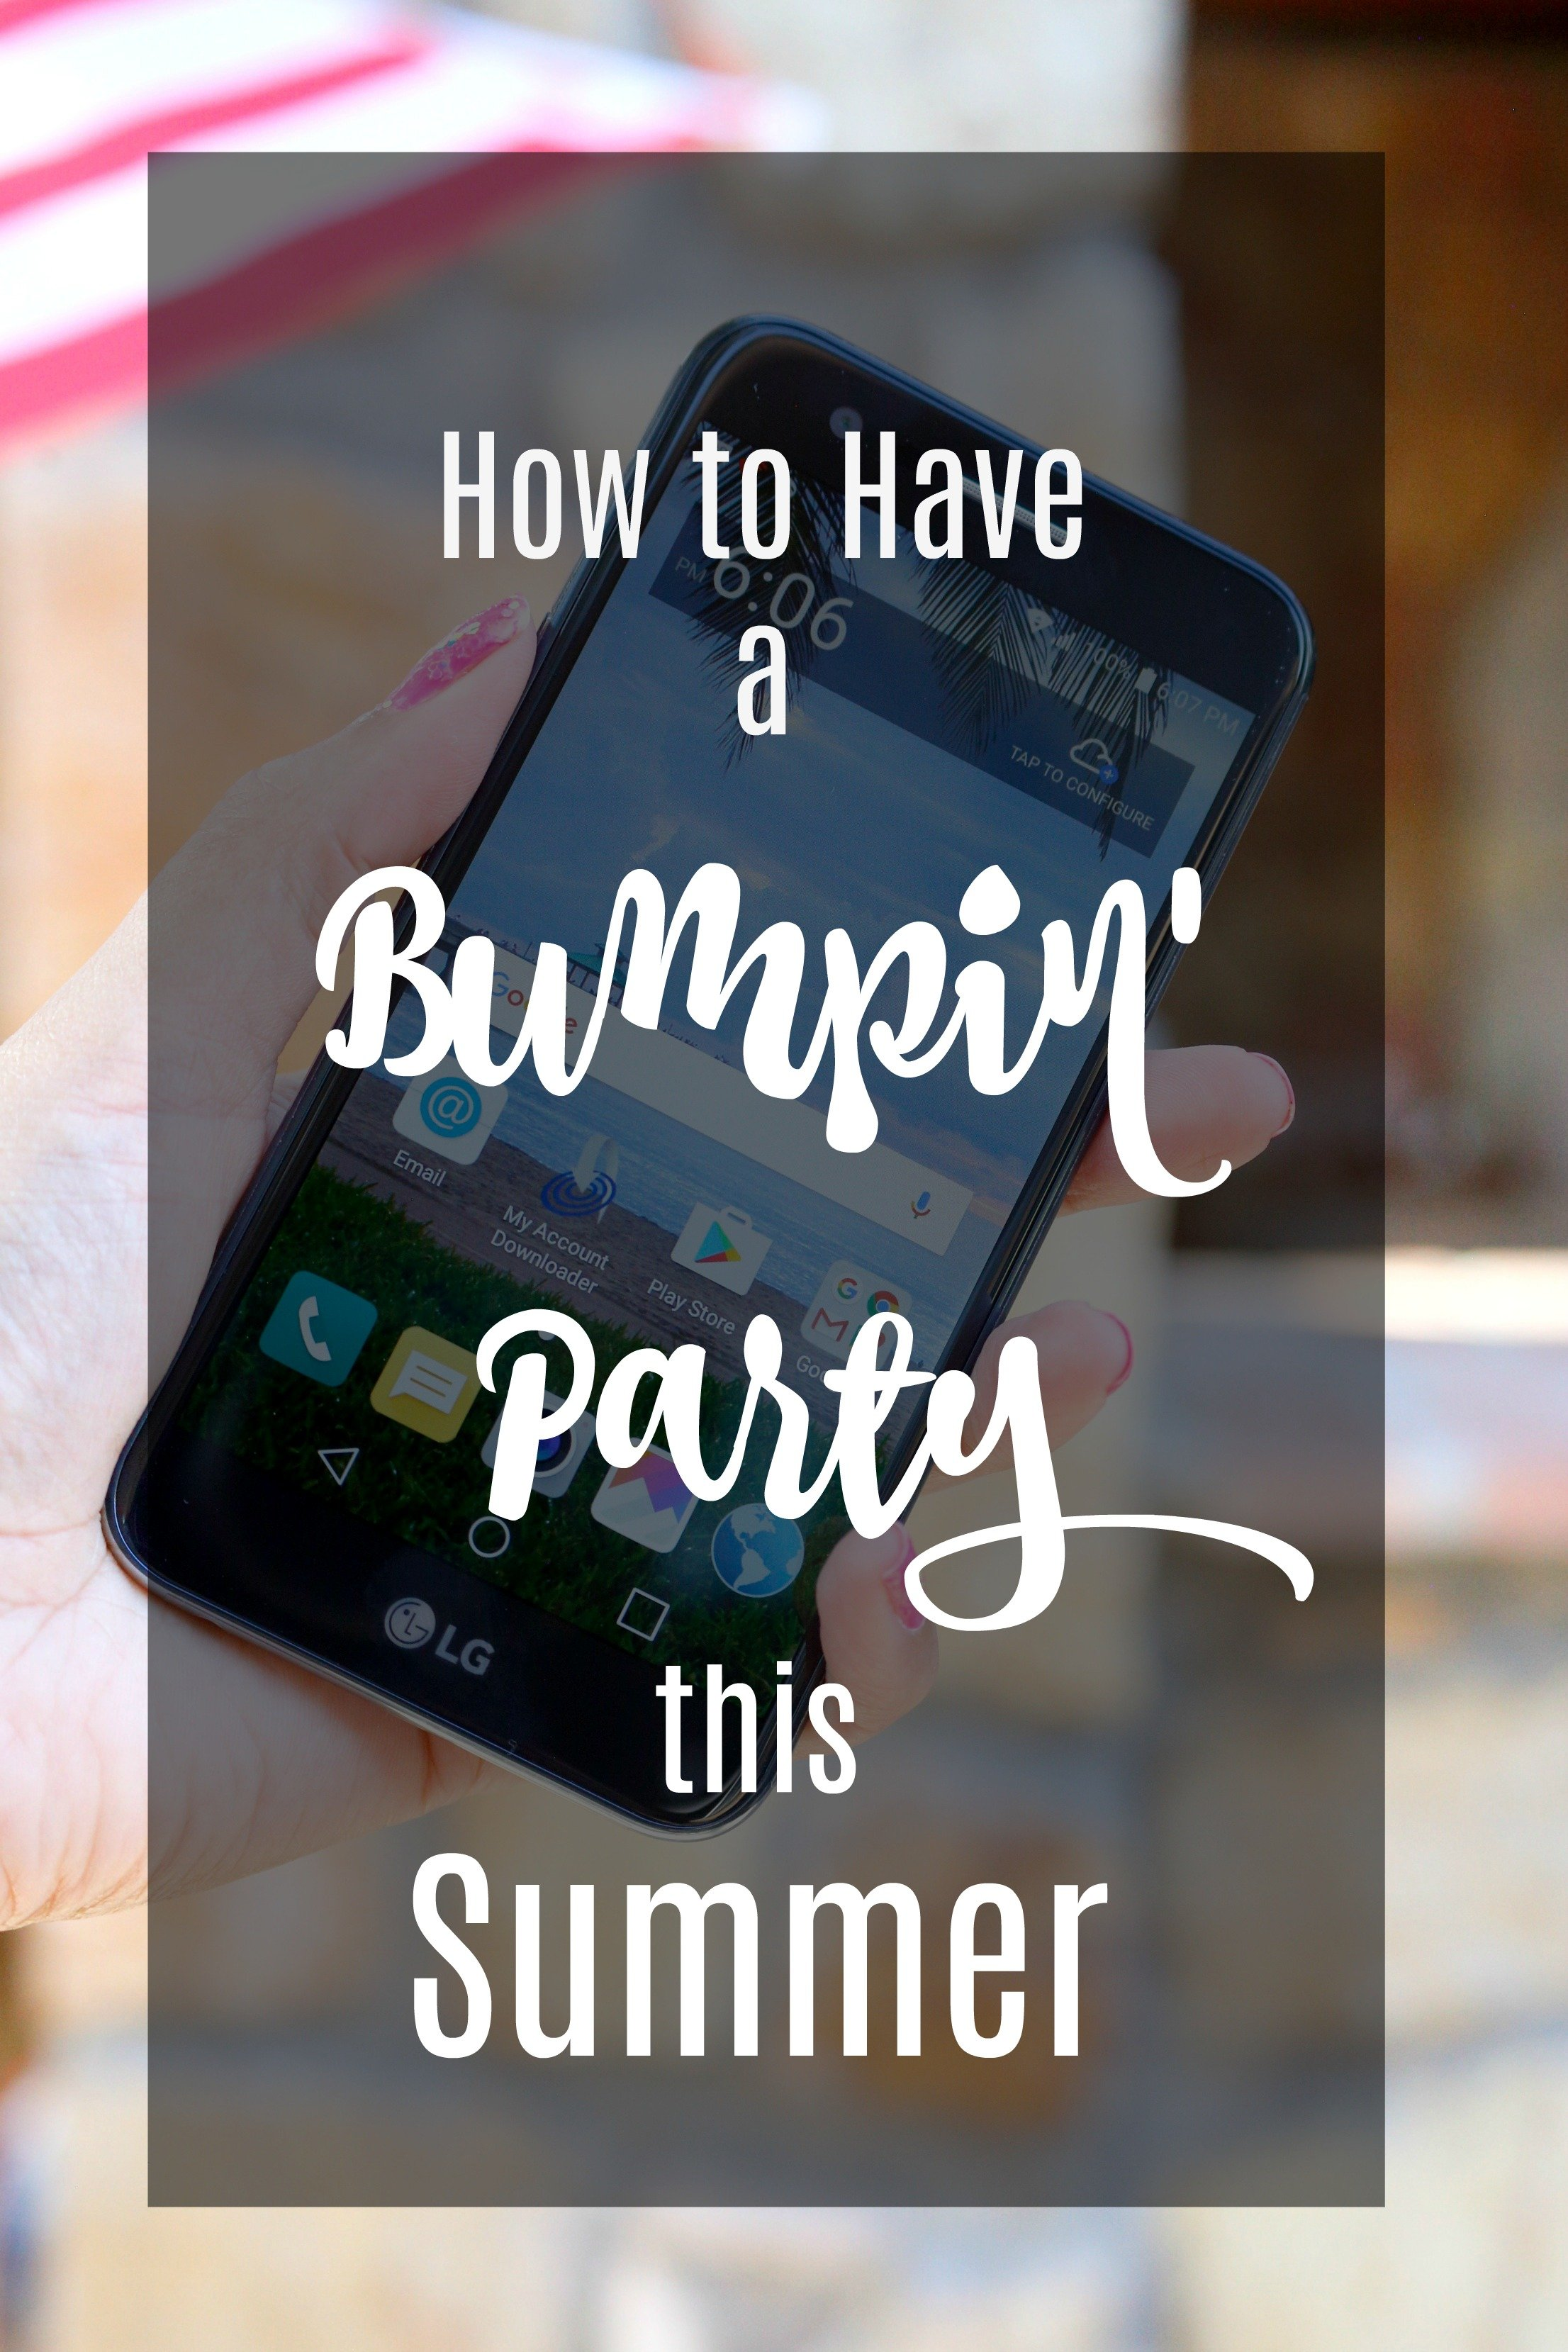 You know what makes a good party? Music! Check out how easy it is to have a bumpin' party this summer and save some money doing it. #SummerisforSavings #wfm1 [ad]